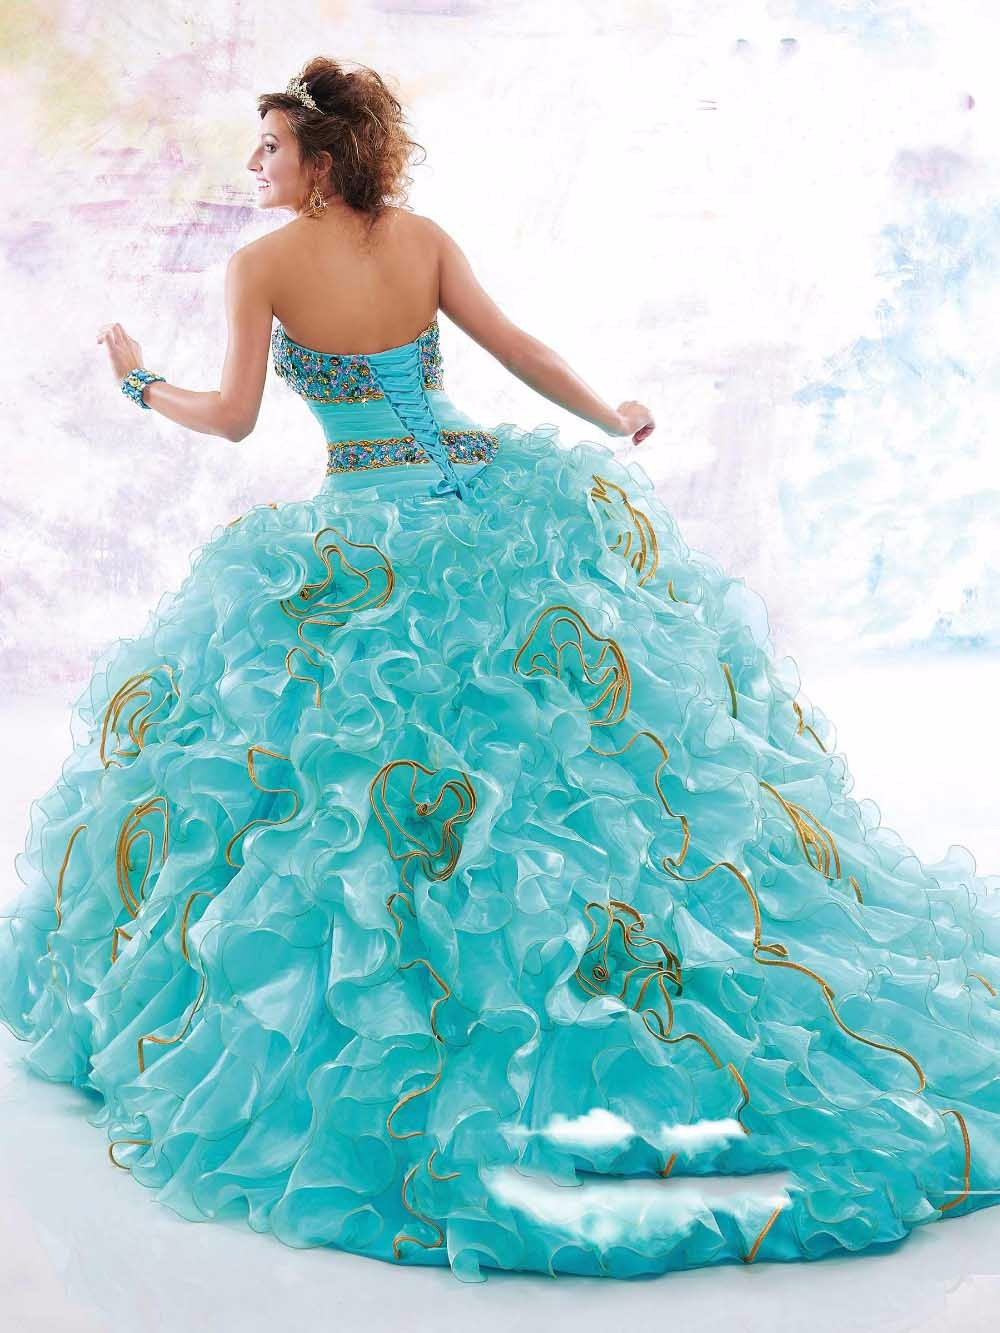 Free-Bolero-Blue-Ball-Gown-Quinceanera-Dresses-New-Sparkling-Beads-Crystal-Organza-Prom-Dresses-15-Years (2)